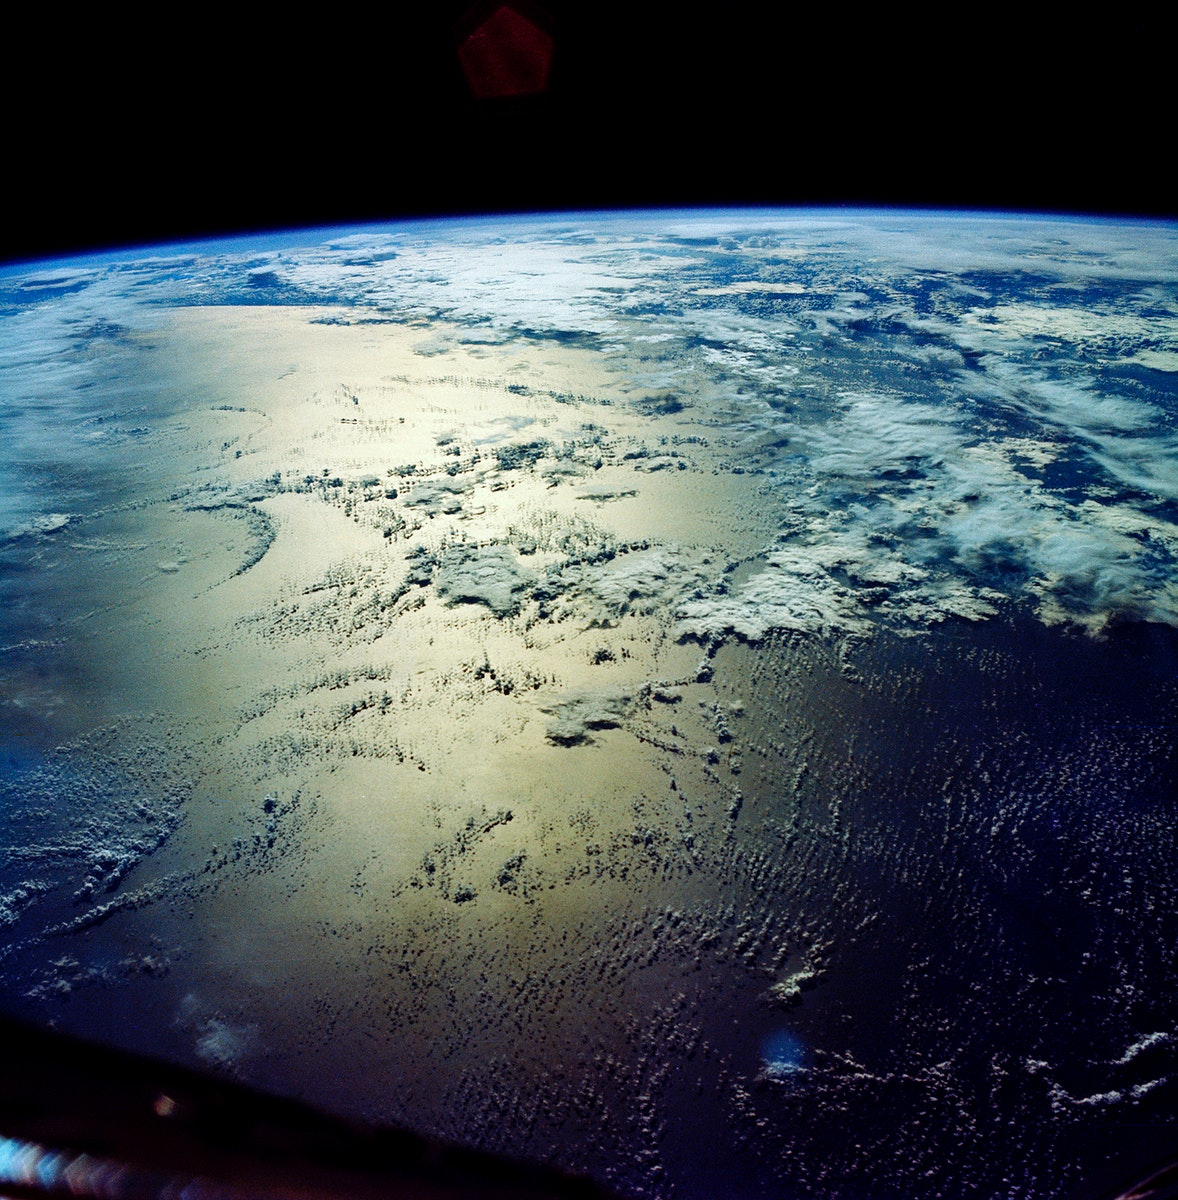 Area of Indian Ocean just east of the island of Madagascar. Original from NASA. Digitally enhanced by rawpixel.